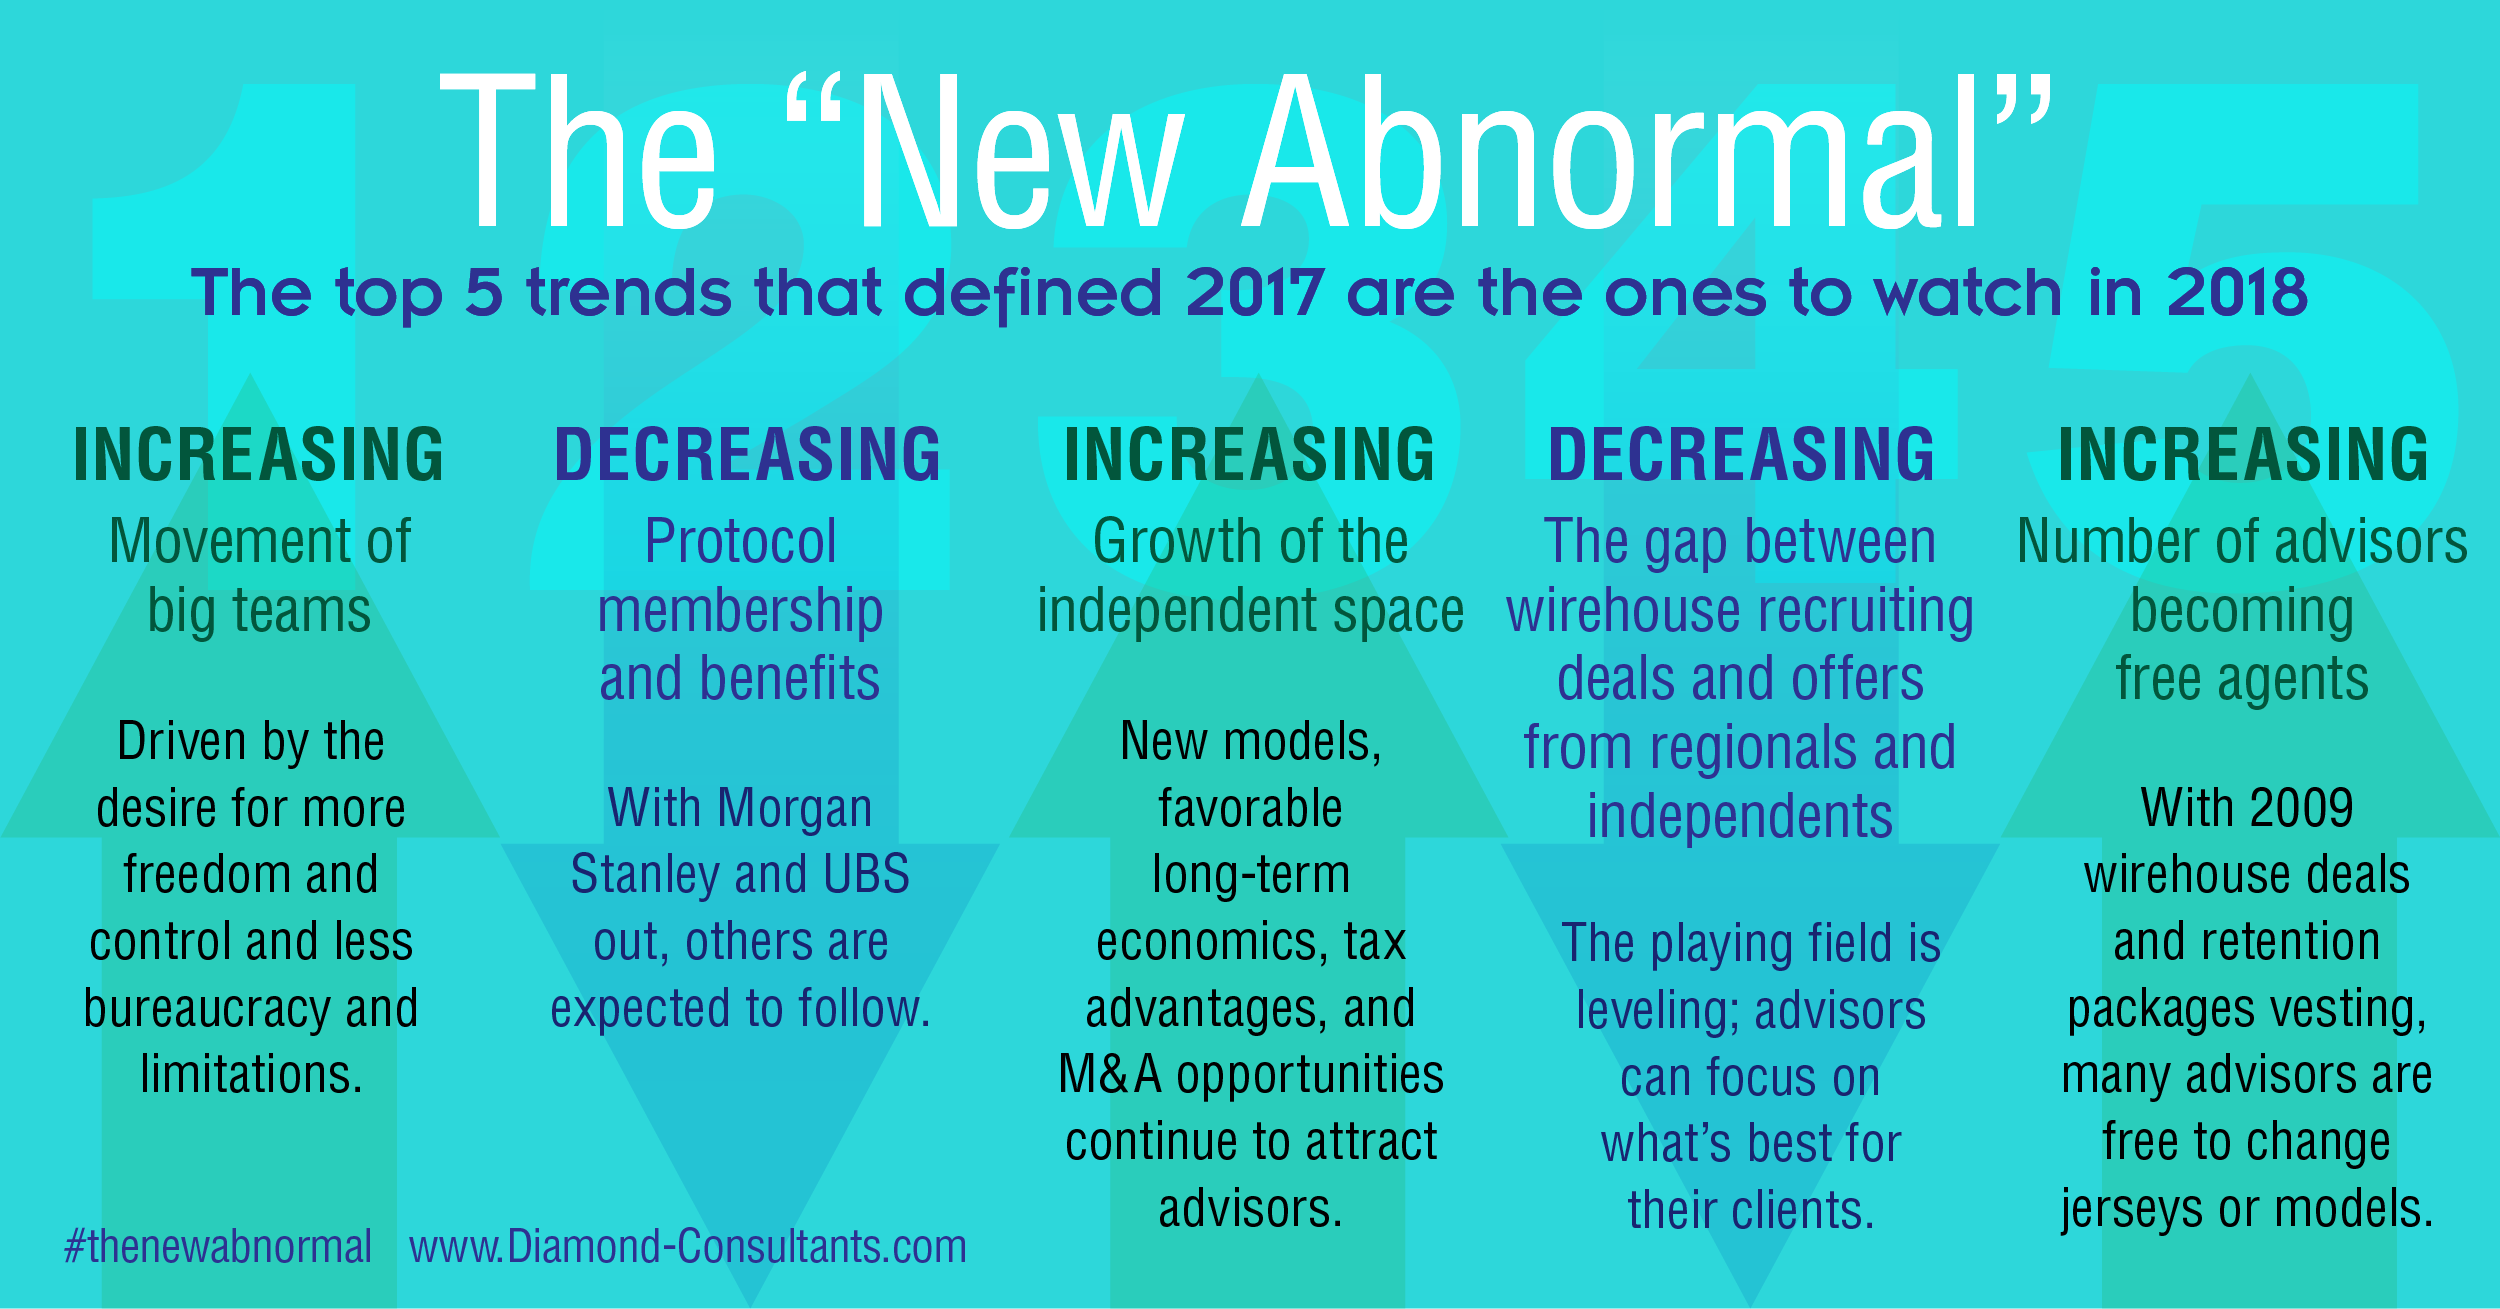 Diamond Consultants - New Abnormal Financial Advisor Trends Infographic